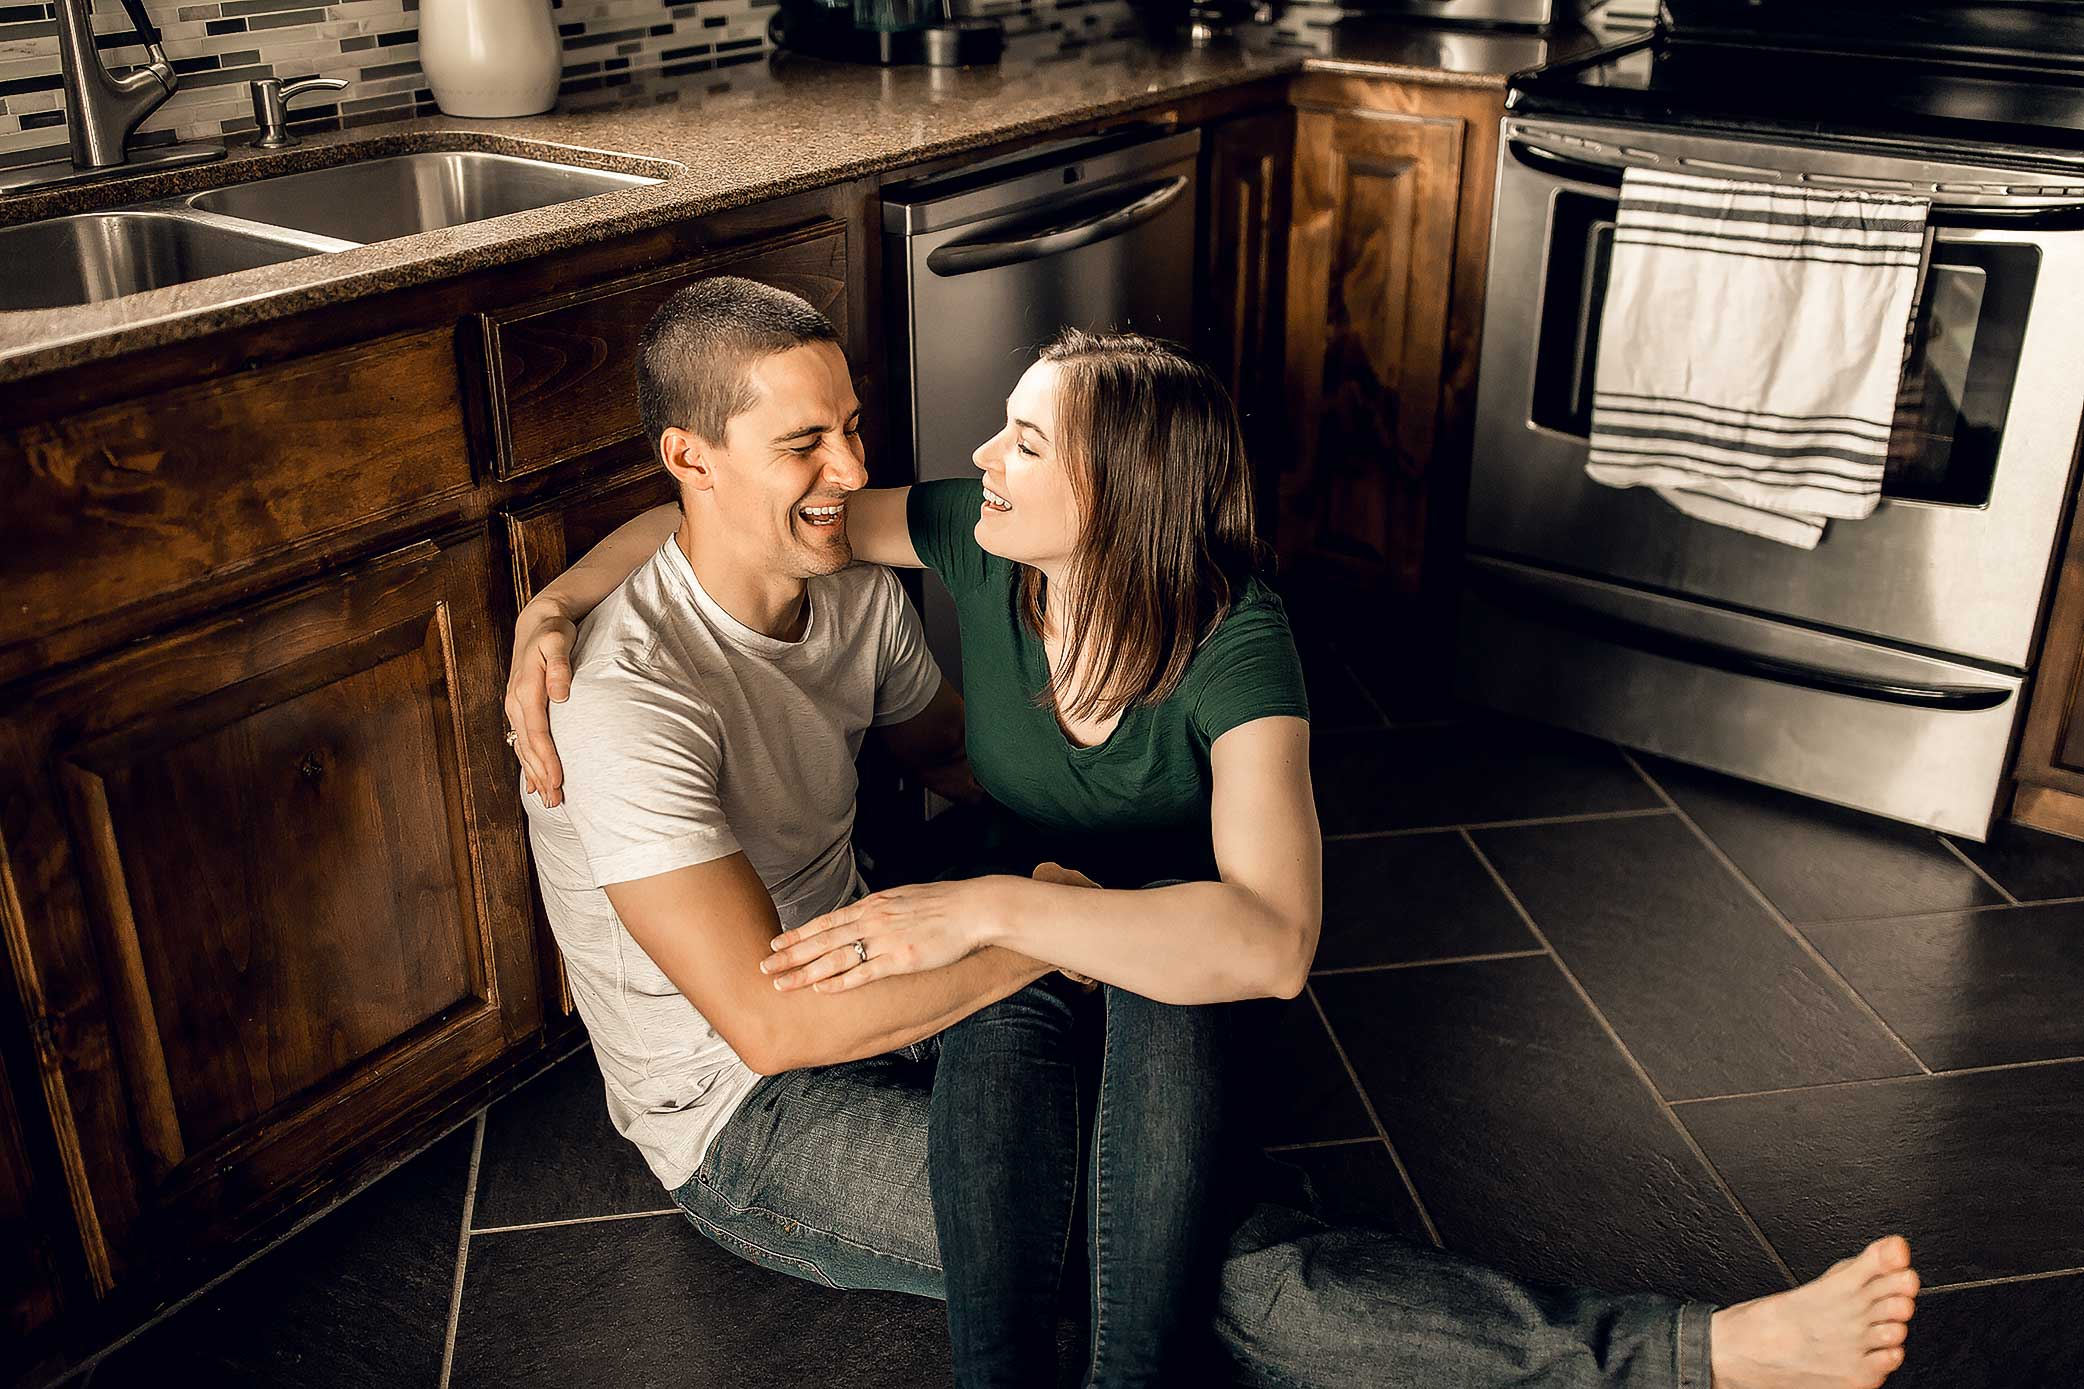 shelby-schiller-photography-lifestyle-home-couples-session-south-college-station-3.jpg